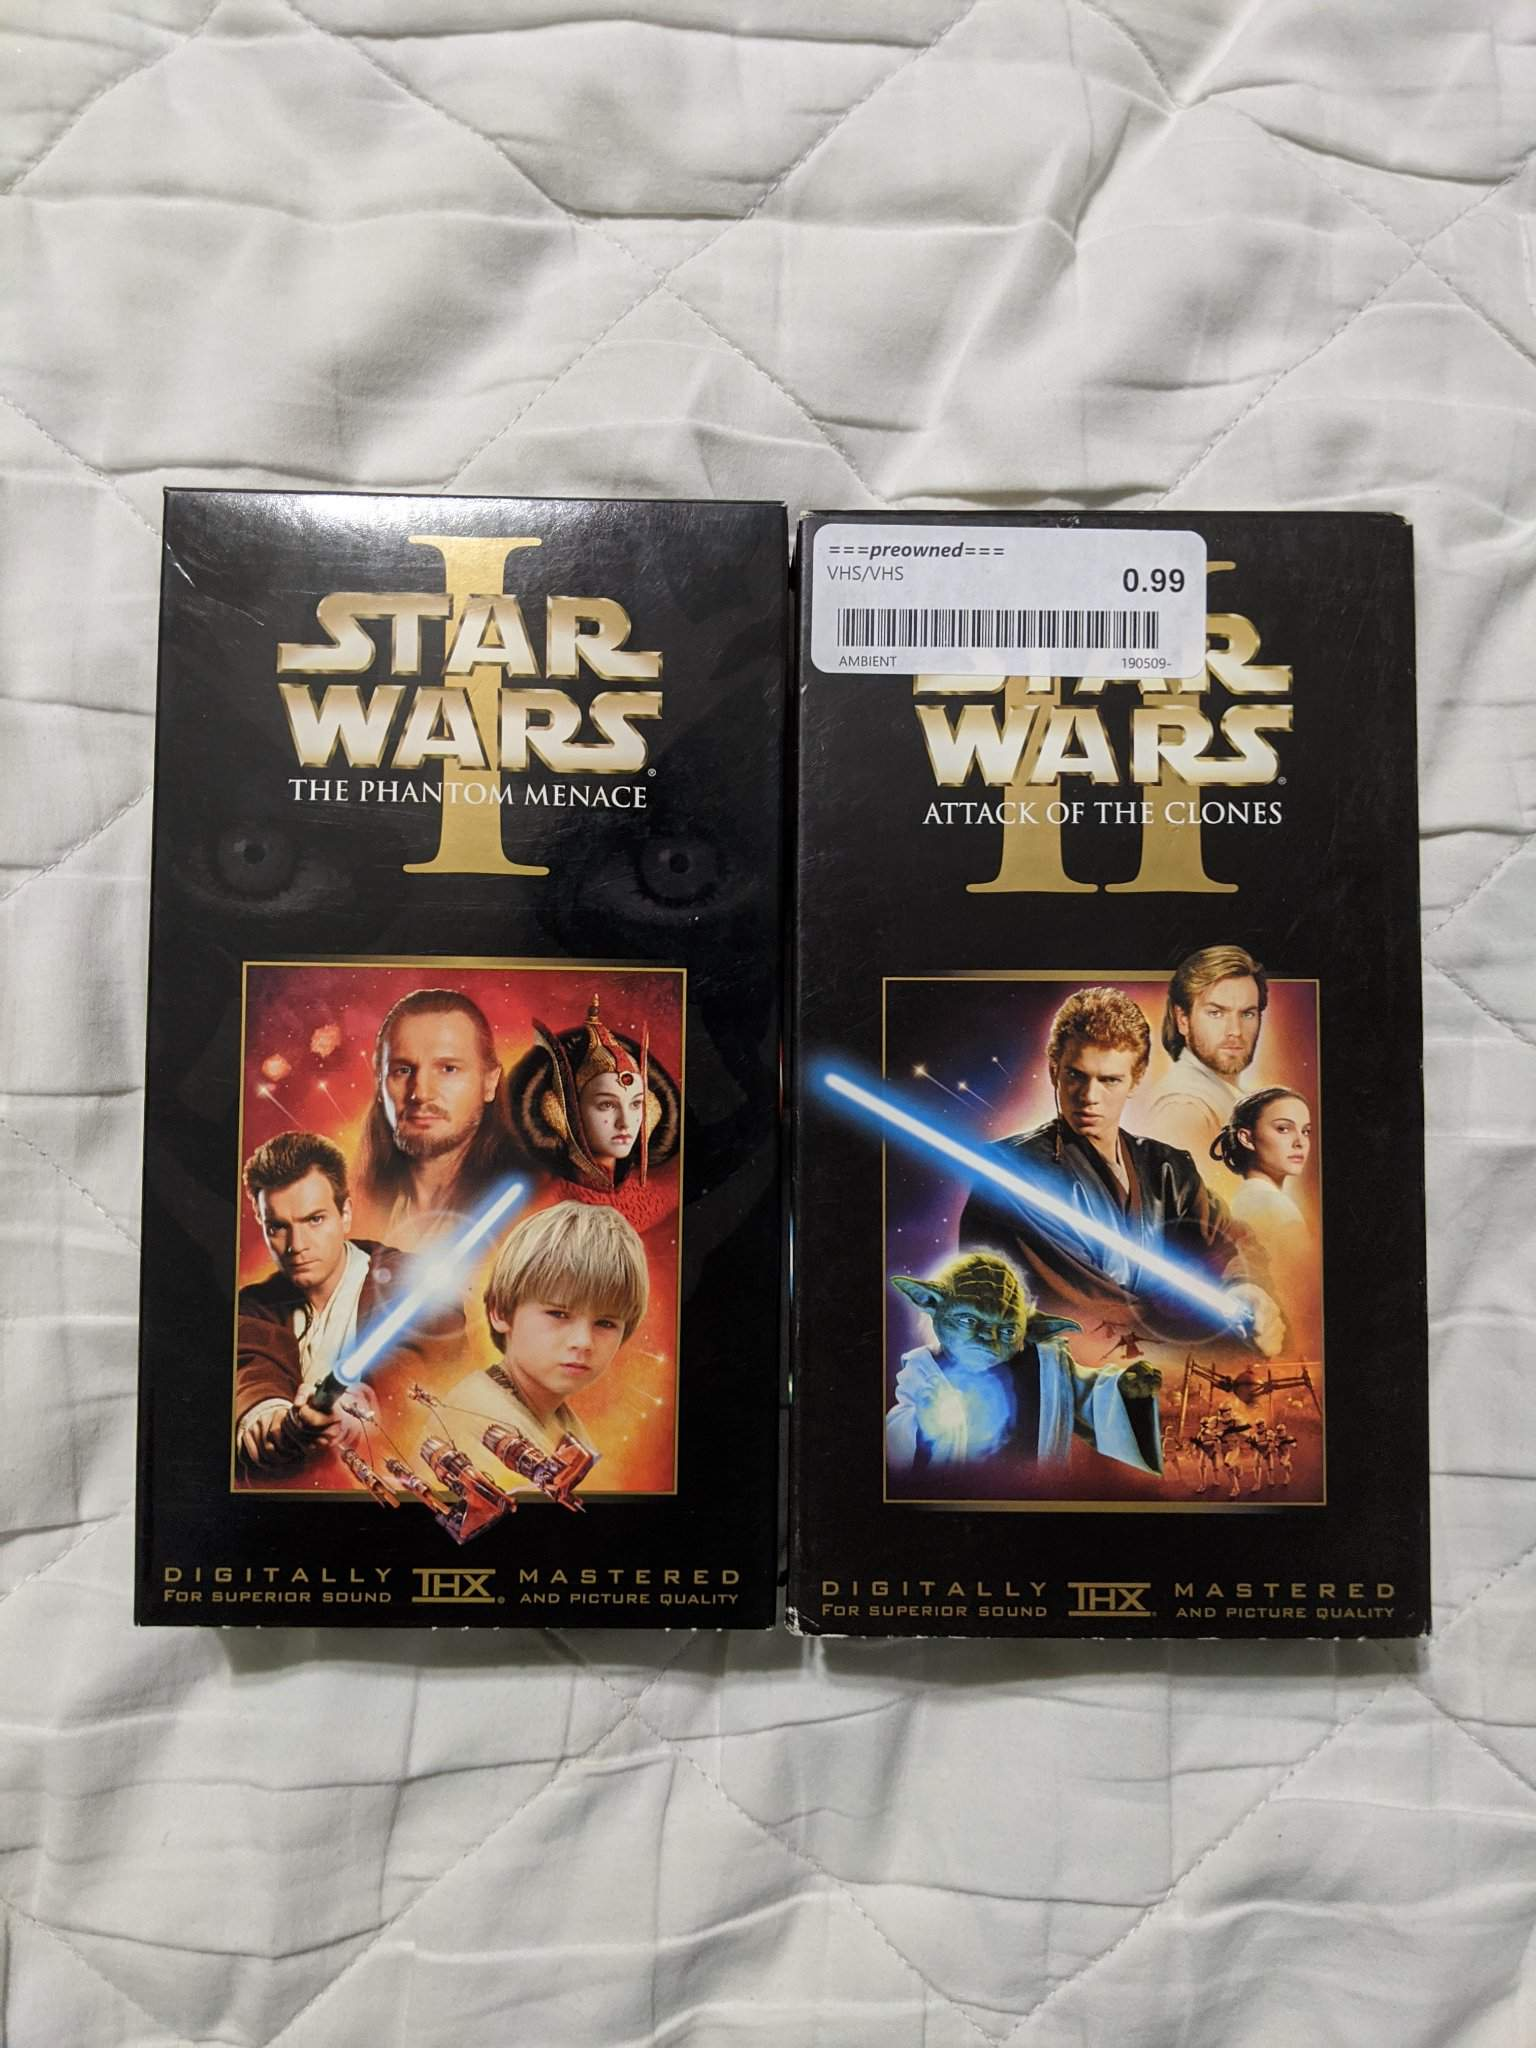 Star Wars Home Video Library Star Wars Amino